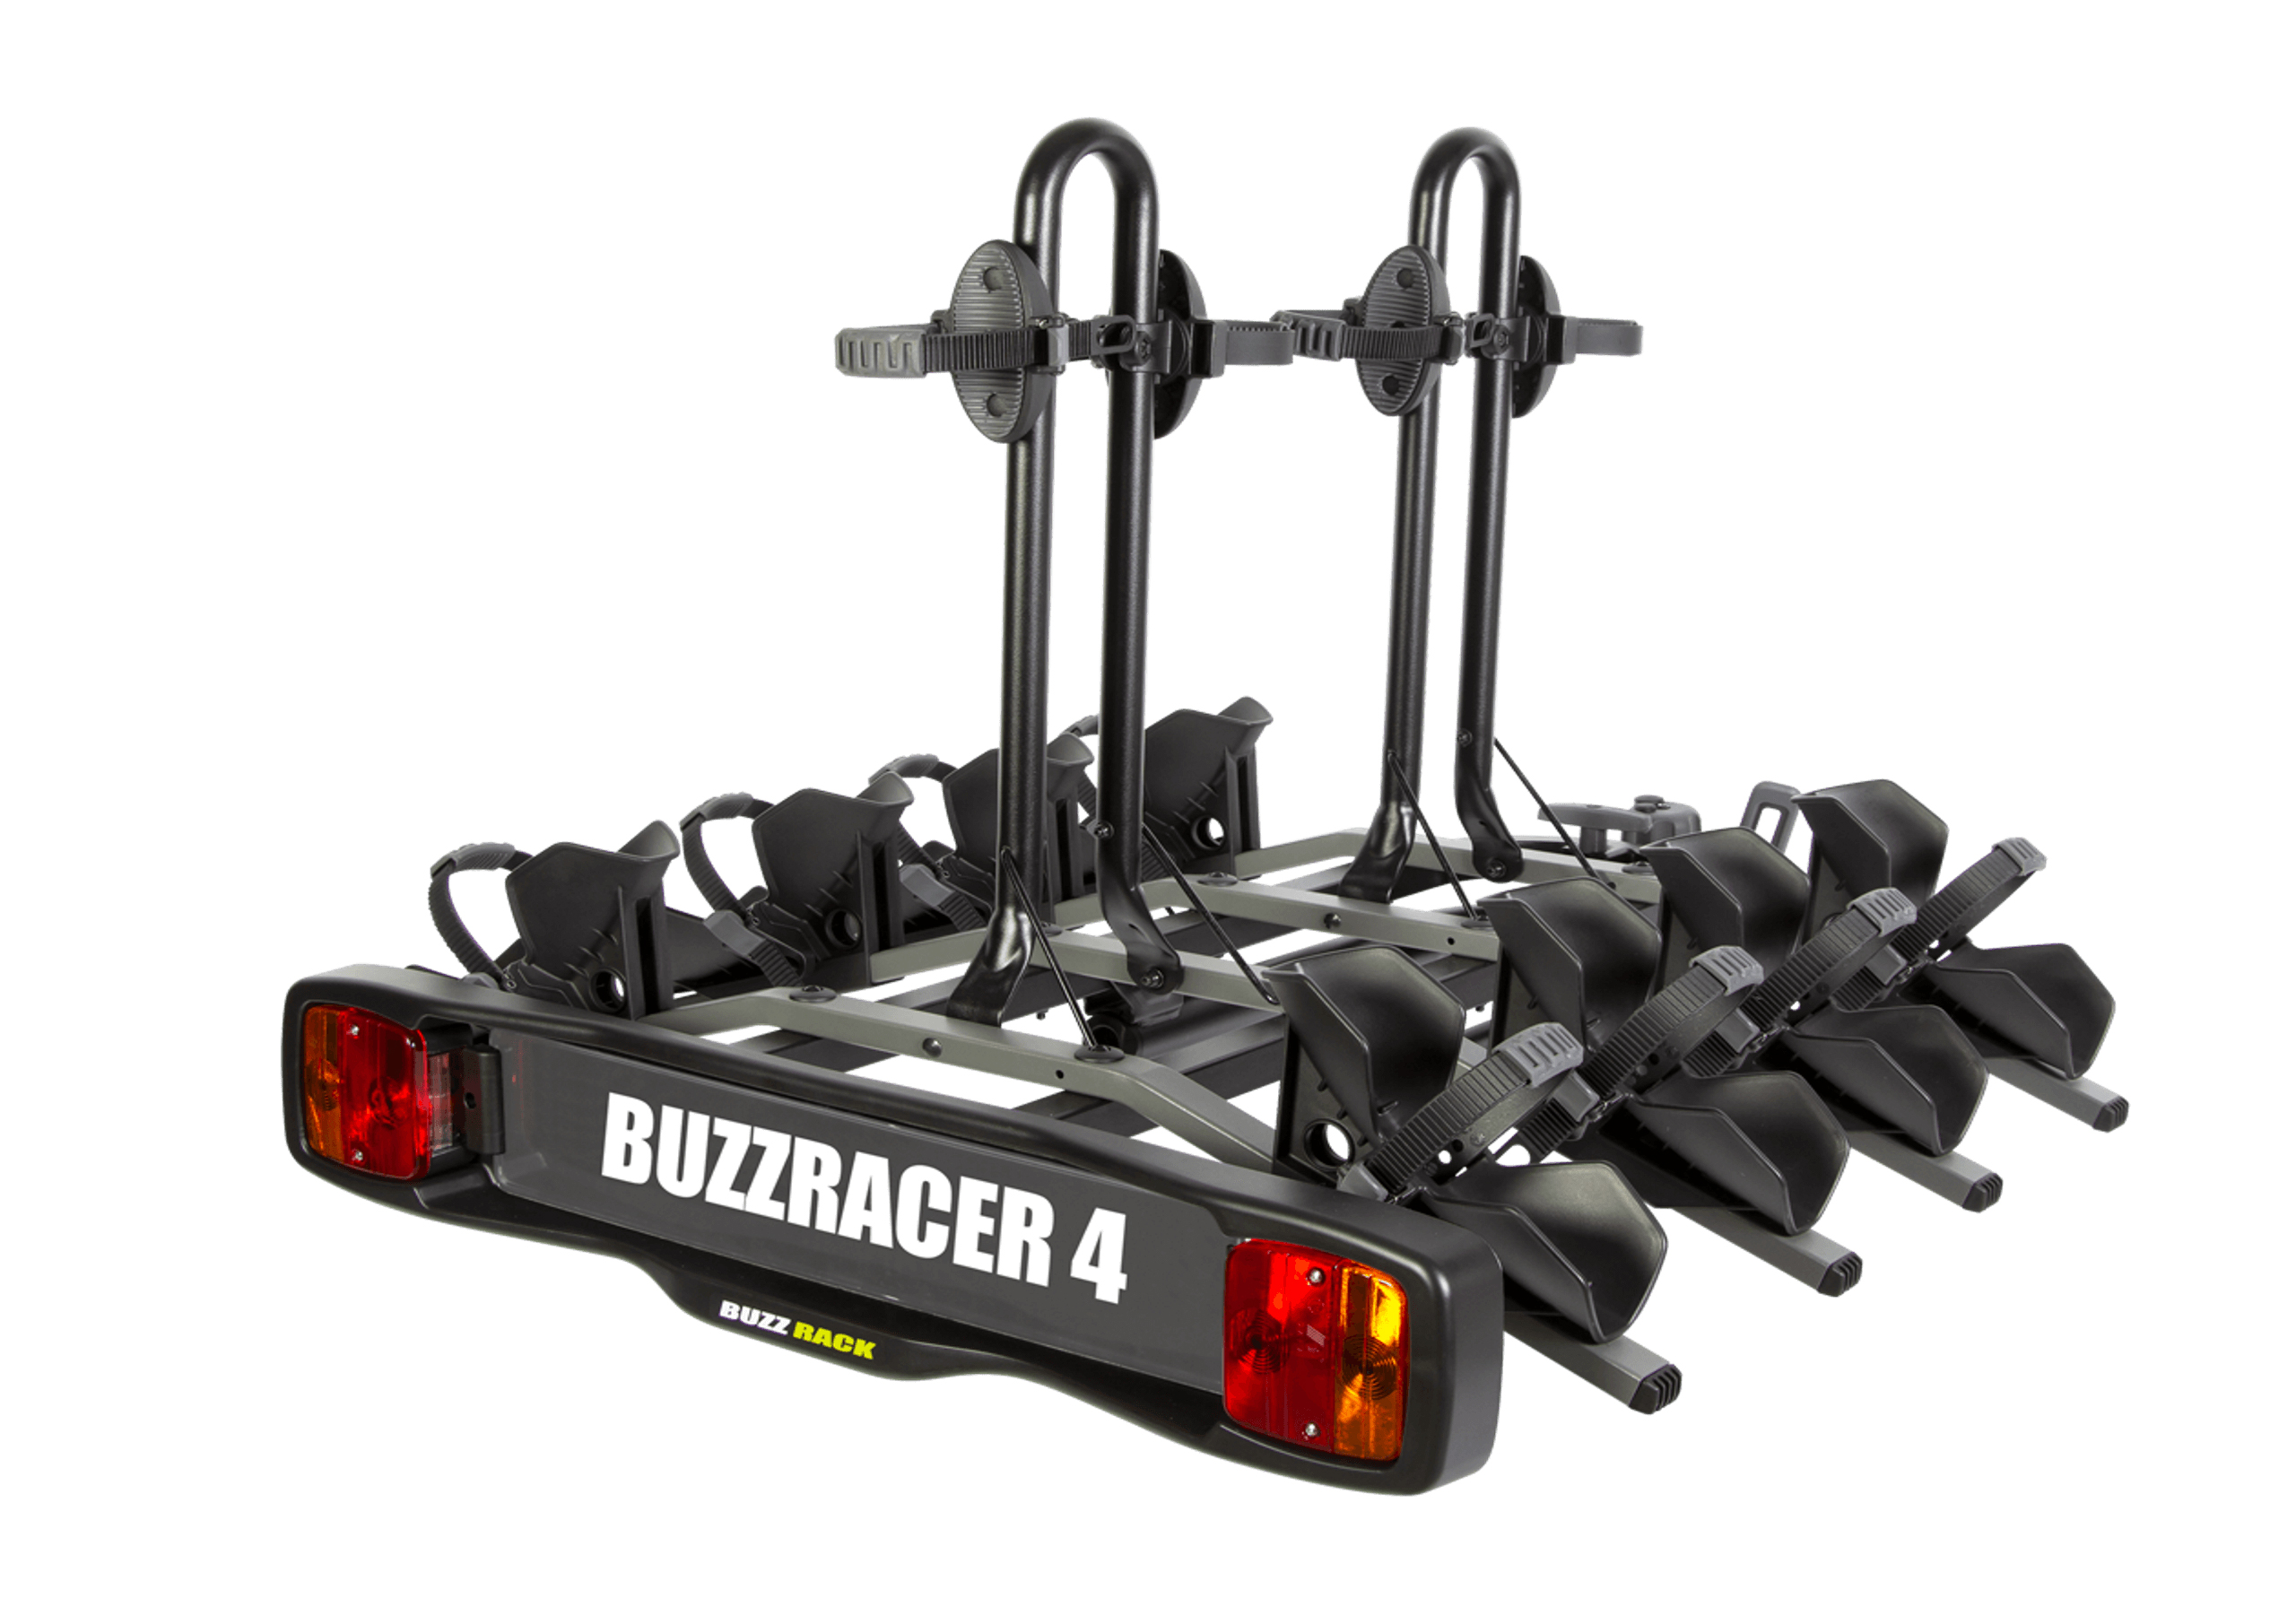 :BUZZ RACK BuzzRacer 4 bike wheel support rack no. BRP334